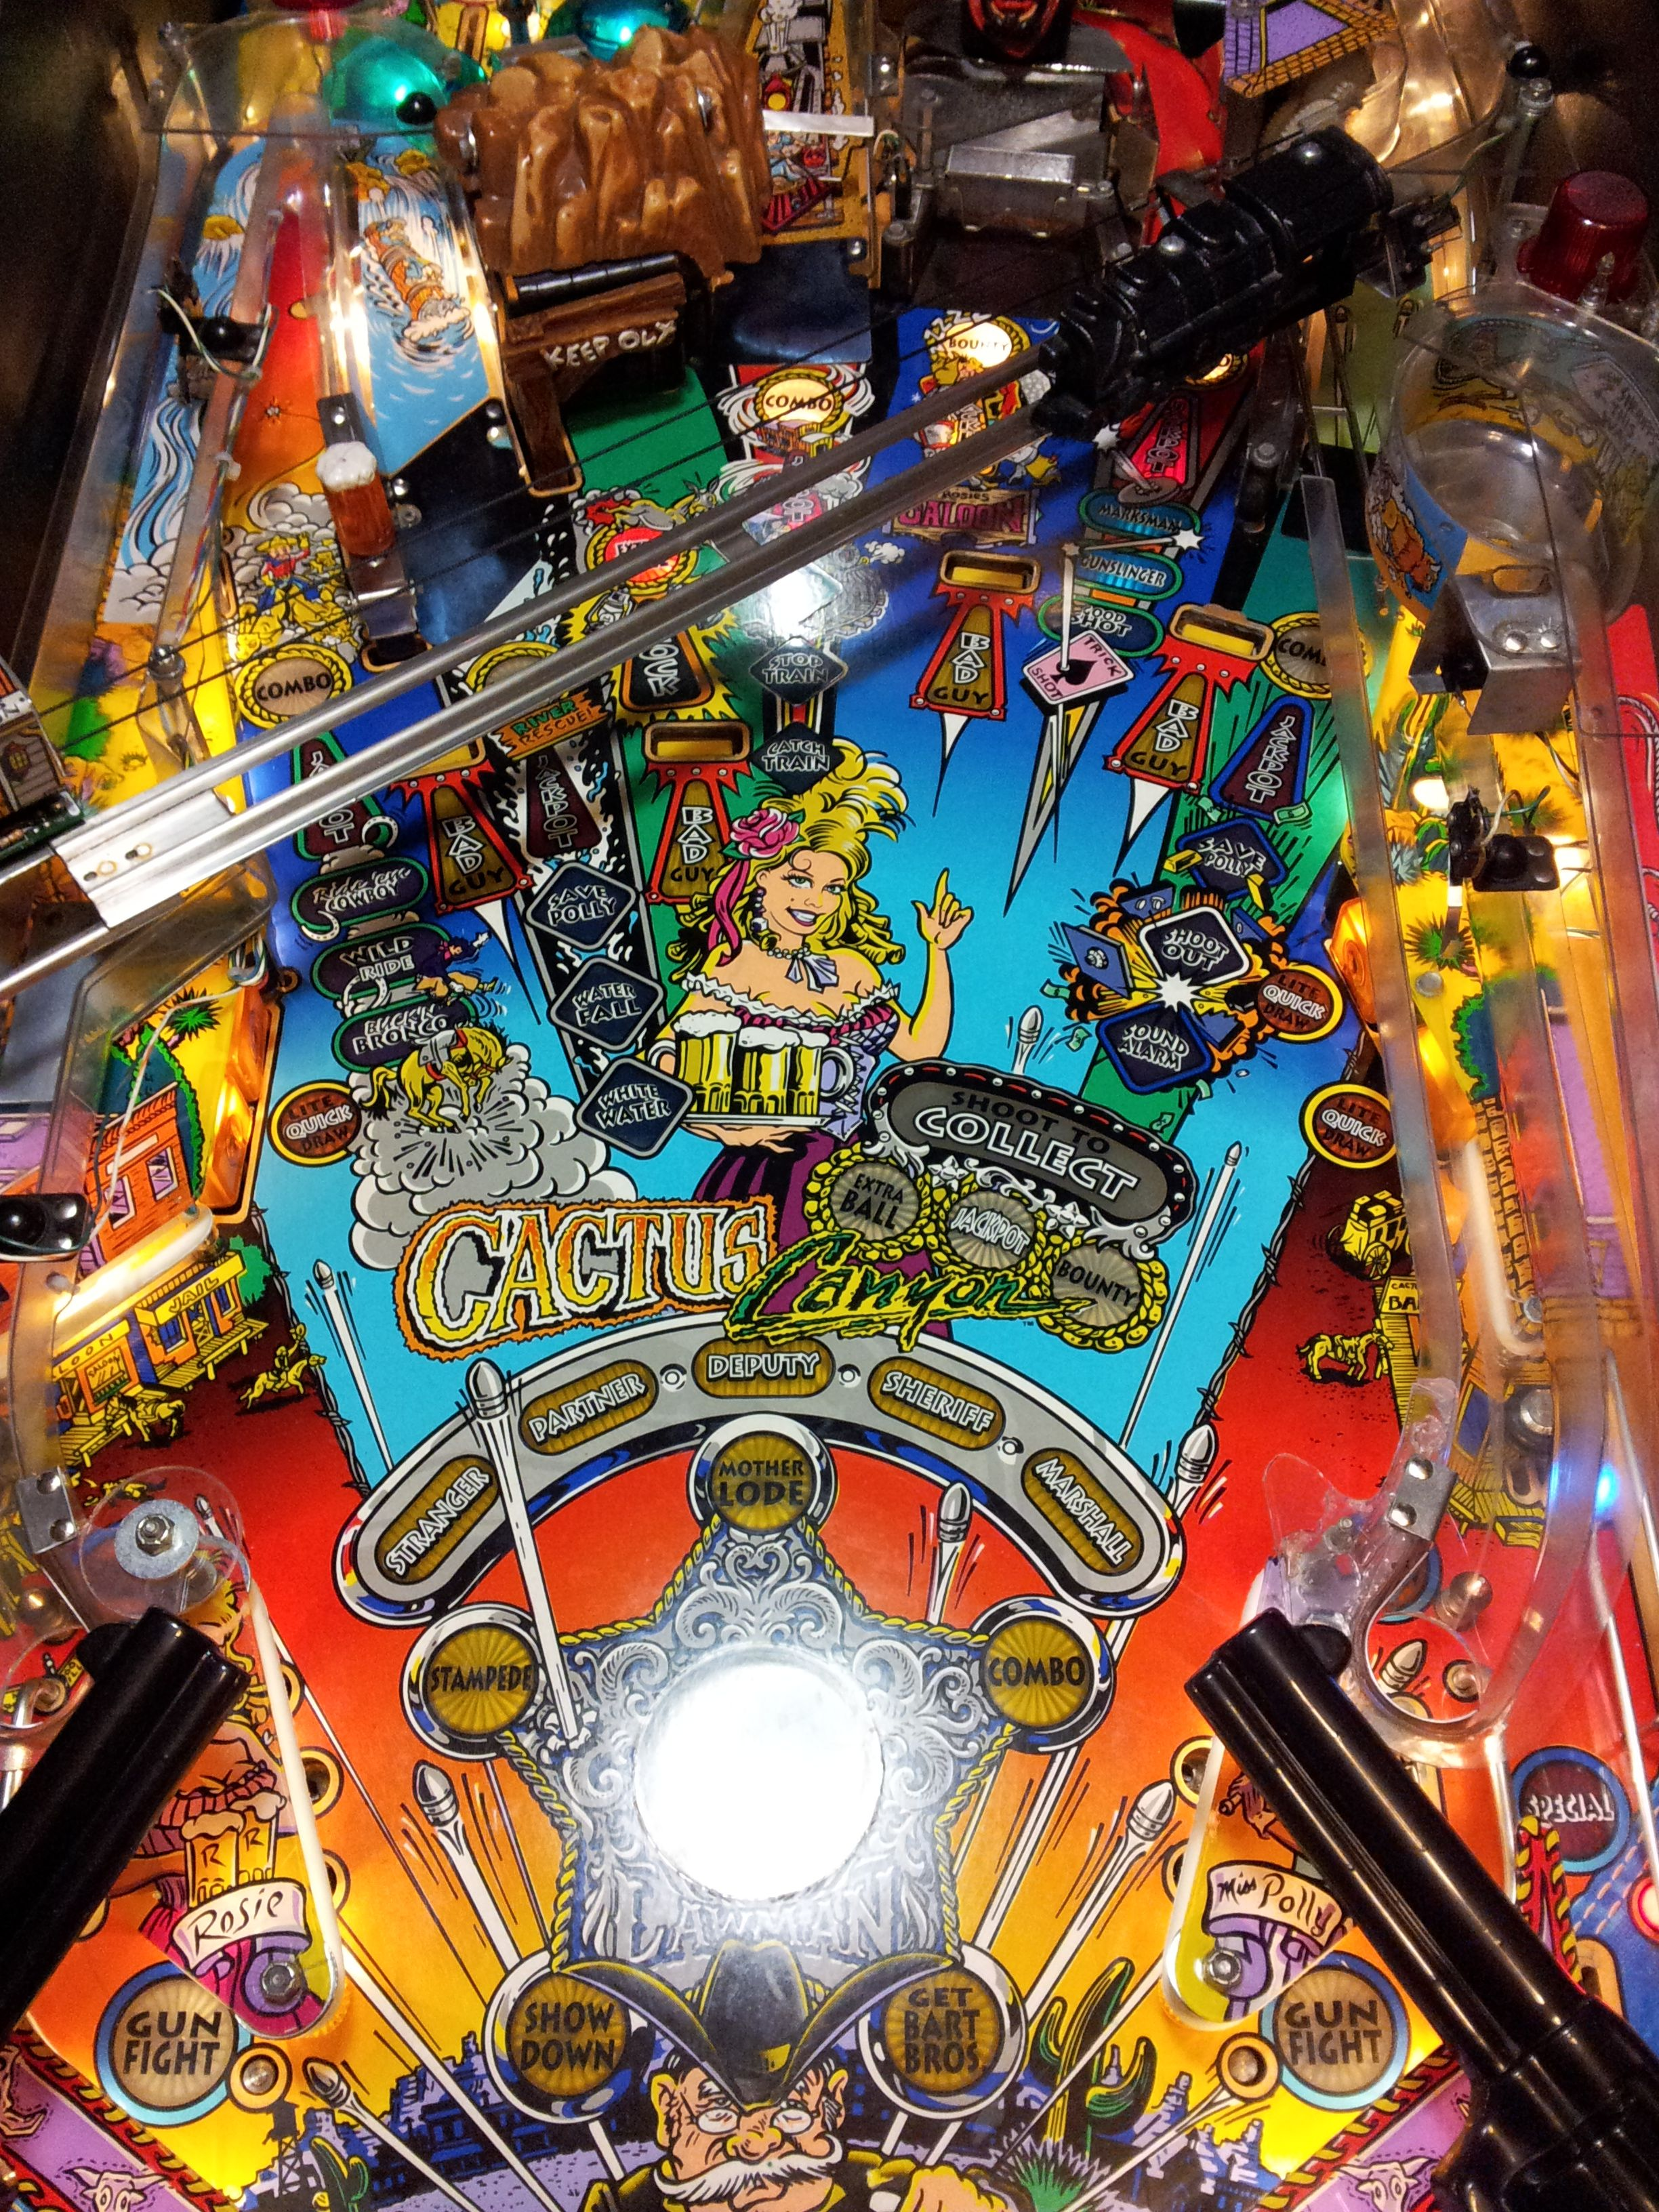 32+ Arcade size games for sale inspiration